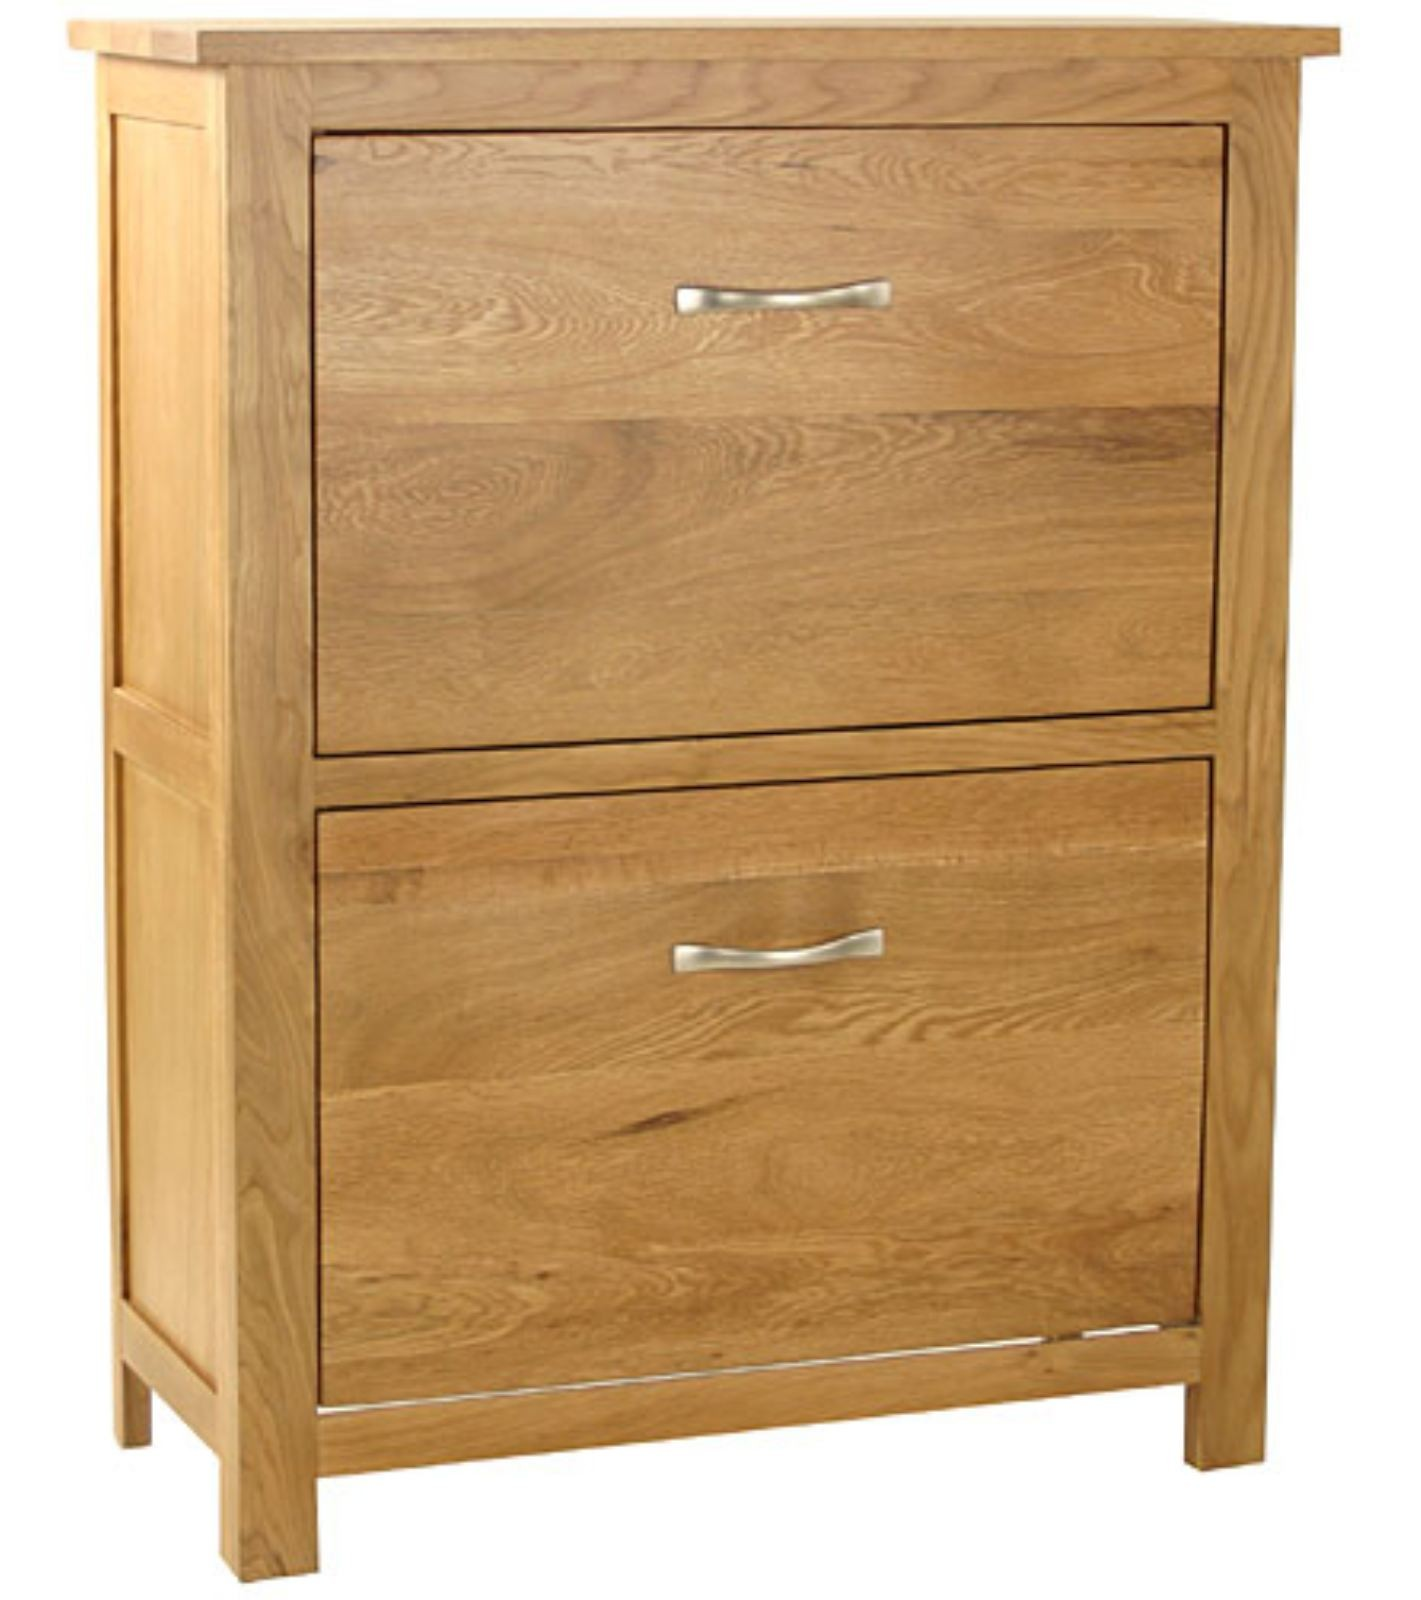 Langdale solid oak hallway furniture hall shoe storage cupboard cabinet eBay